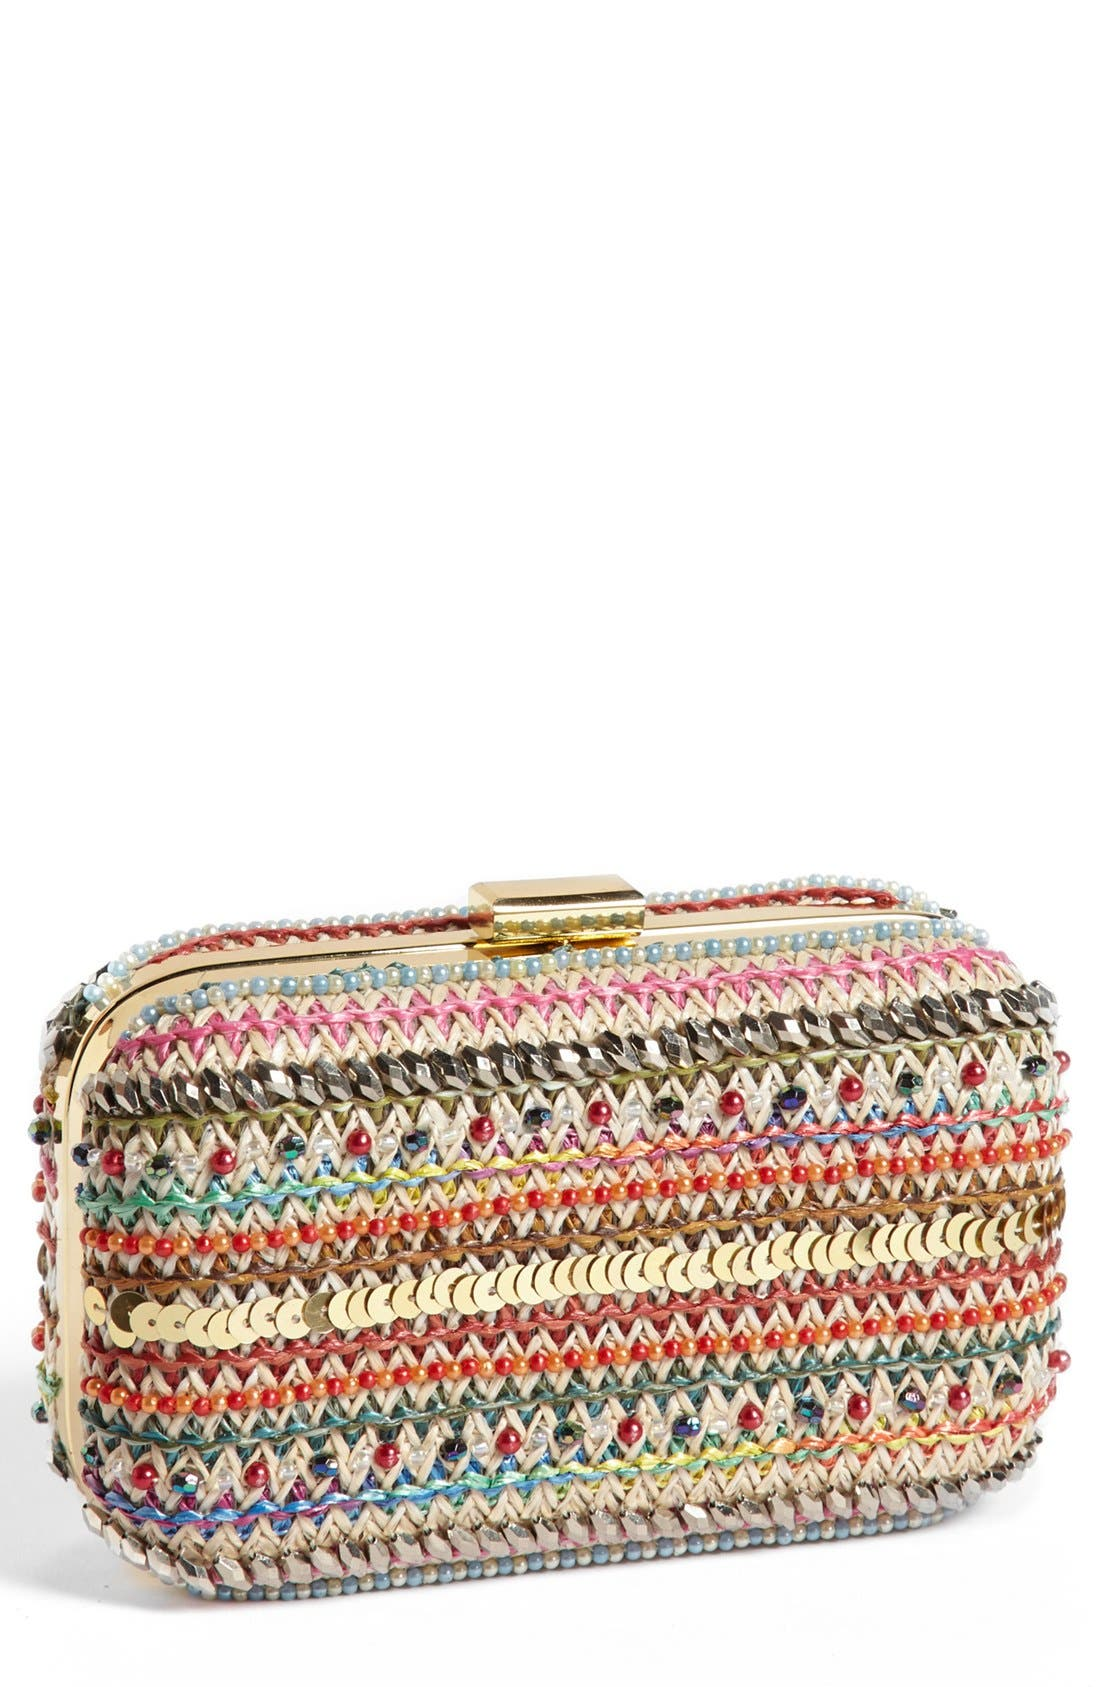 Alternate Image 1 Selected - Jessica McClintock Woven Minaudiere